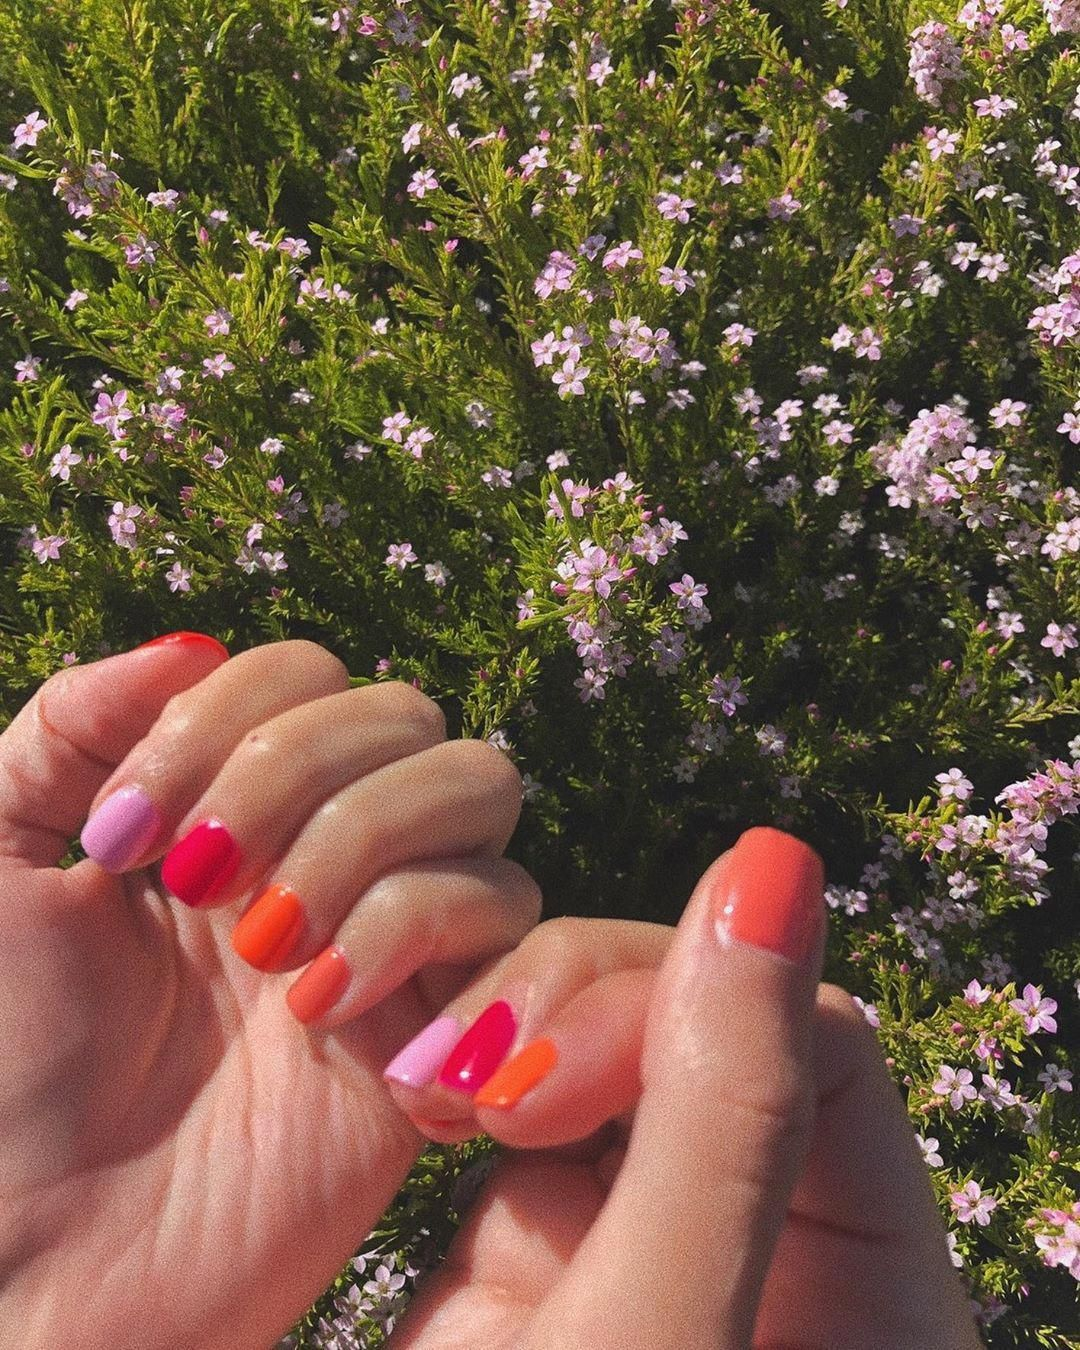 Nails Gel Or Acrylic What Is The Best Choice In 2020 Gelove Nehty Manikura Nehty